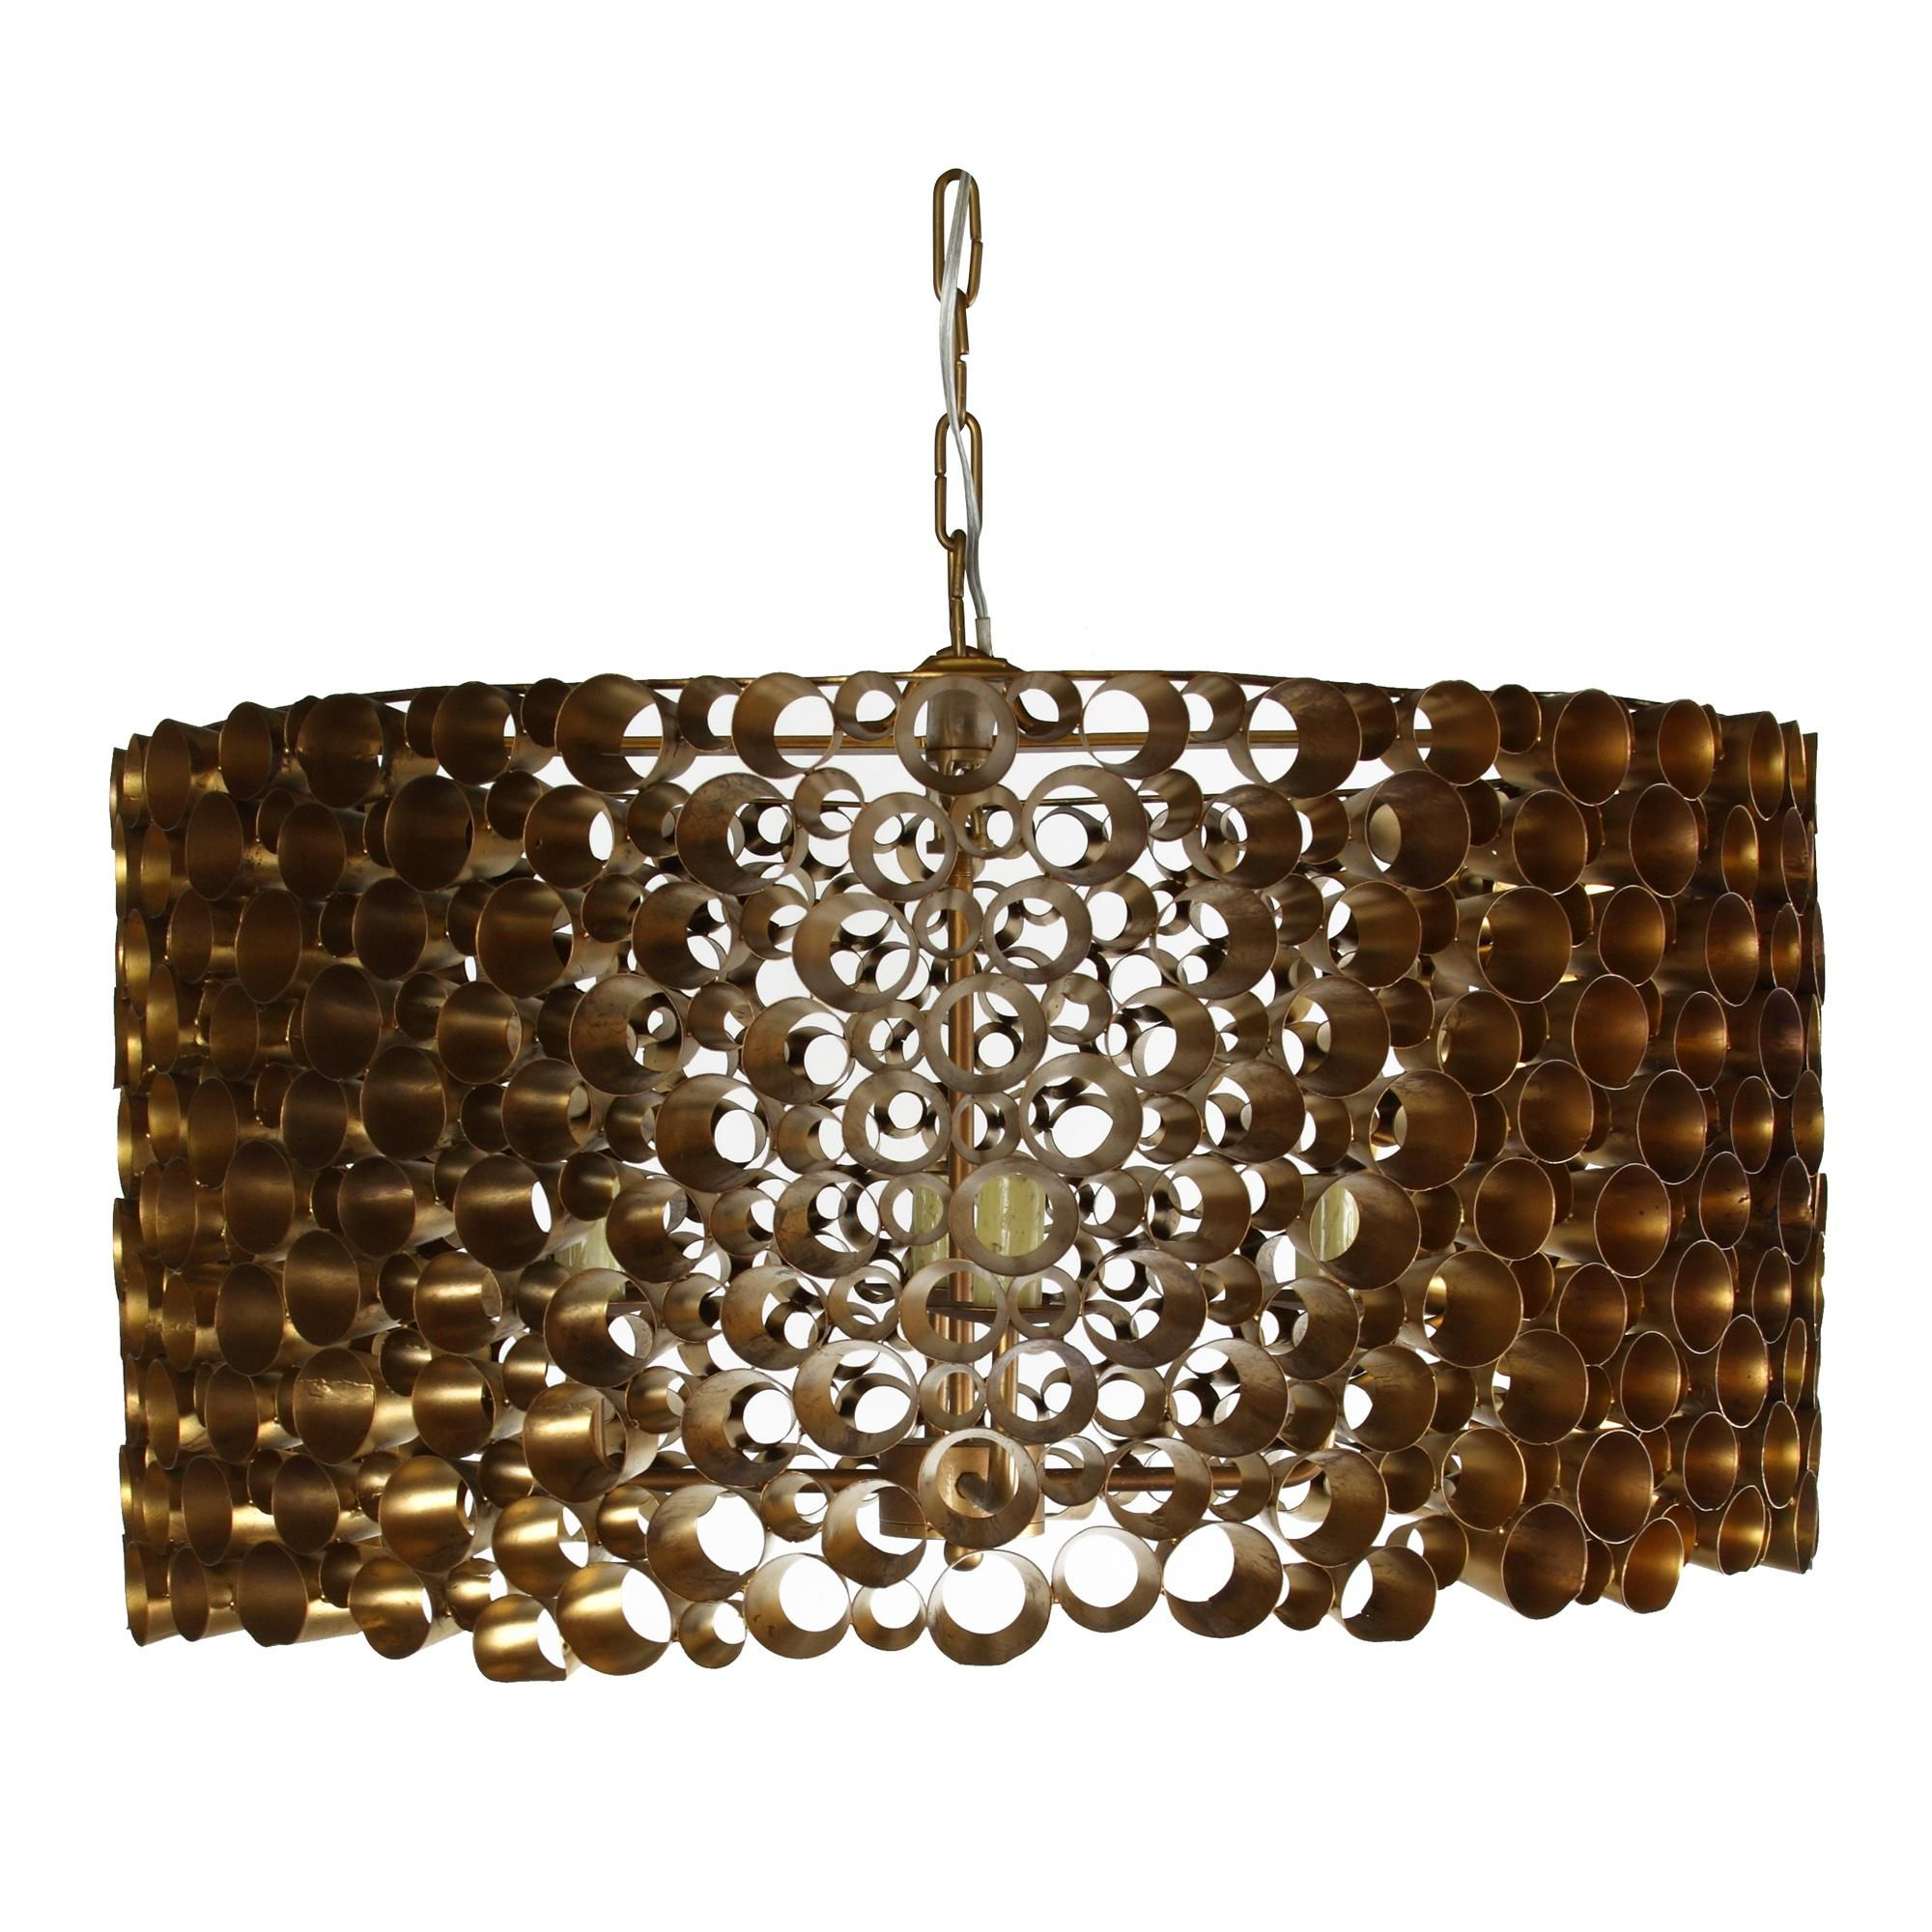 Drum Chandelier made up of individual lengths of gold pipe with